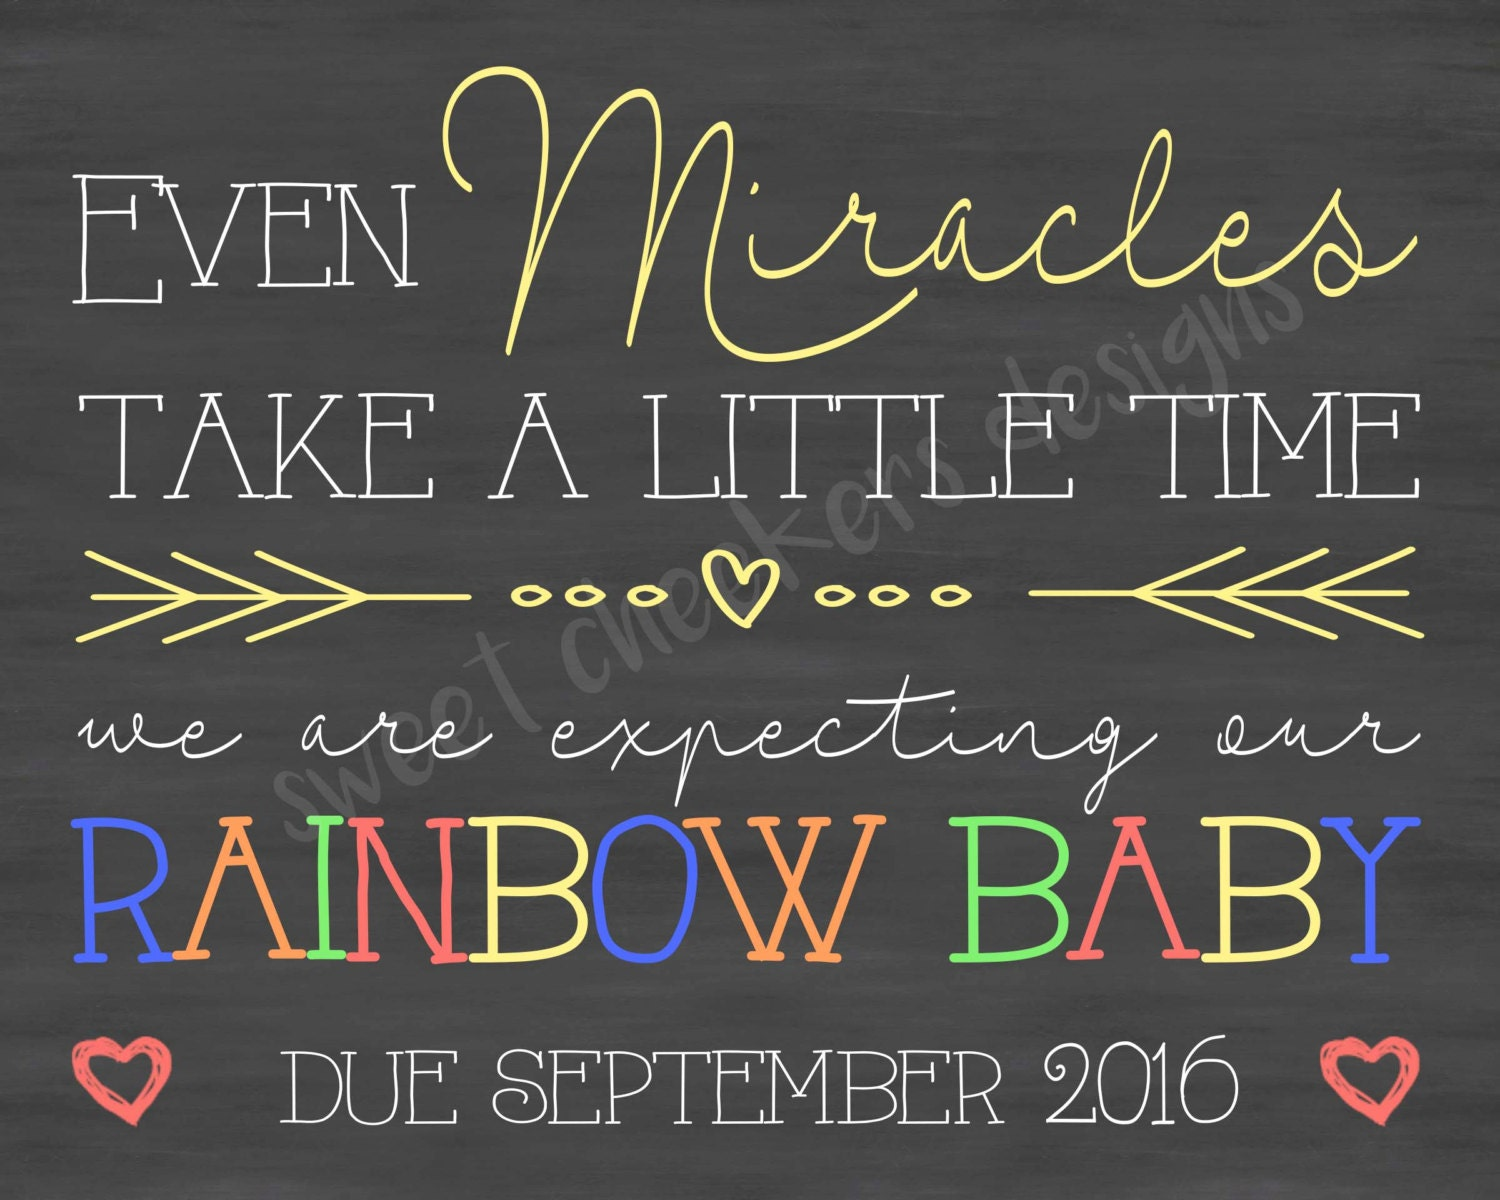 Custom Rainbow Baby Pregnancy Announcement By